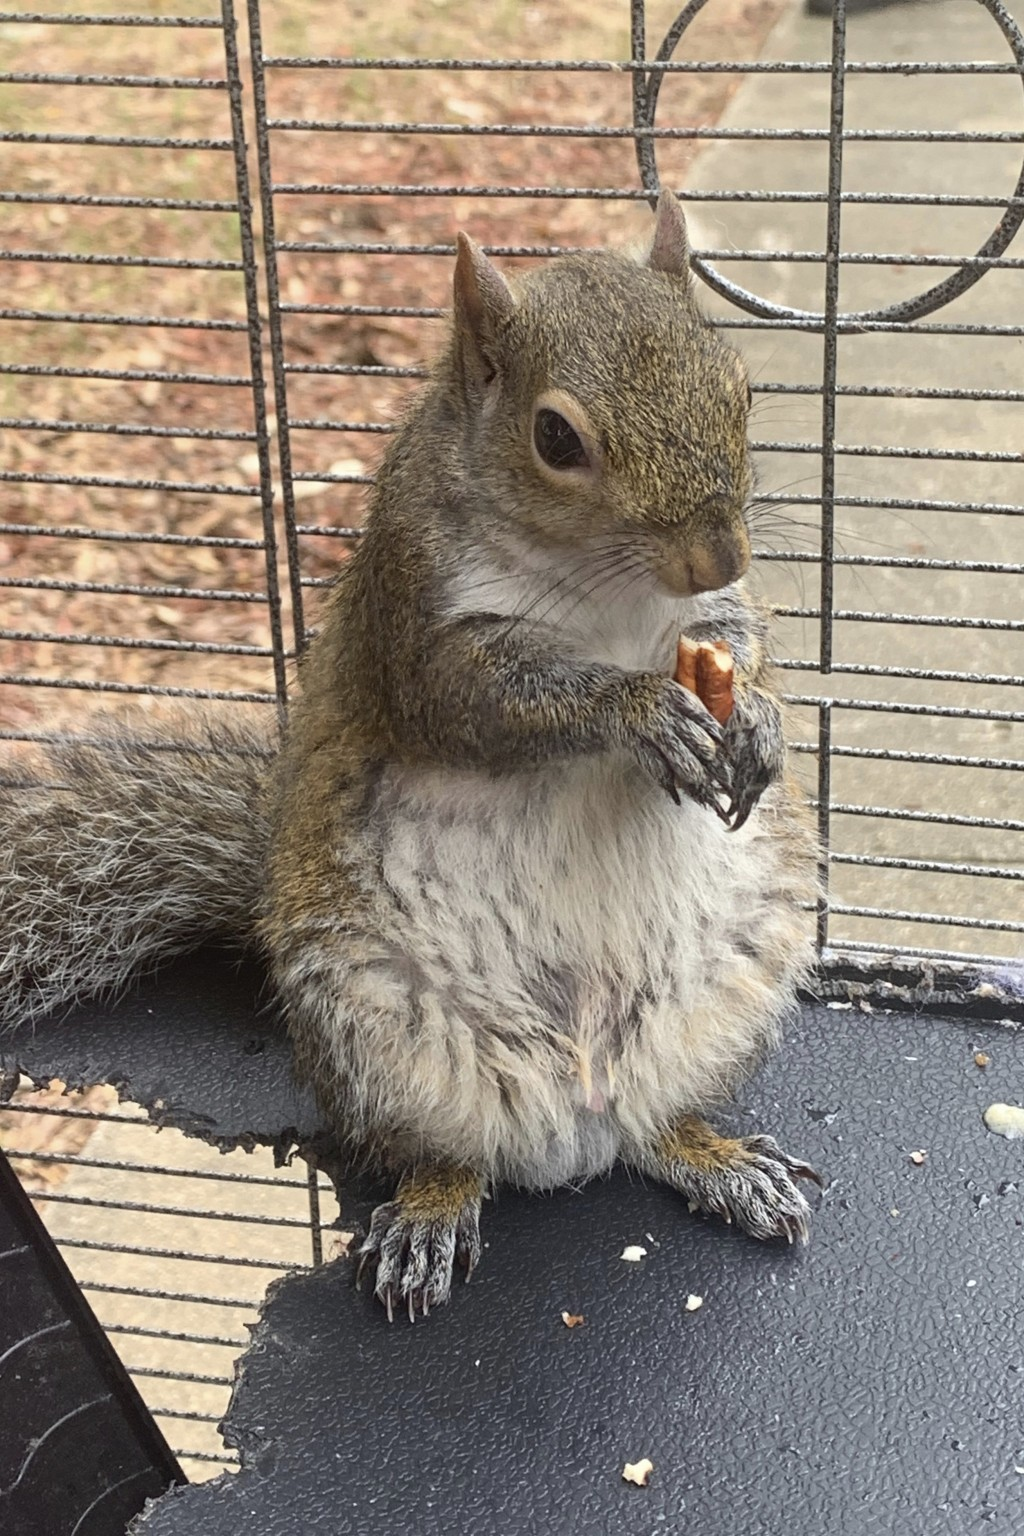 FILE - In this June 2019 file photo released by the Limestone County Sheriff's Office, a squirrel is shown in a cage, in Ala. An Alabama man who denie...